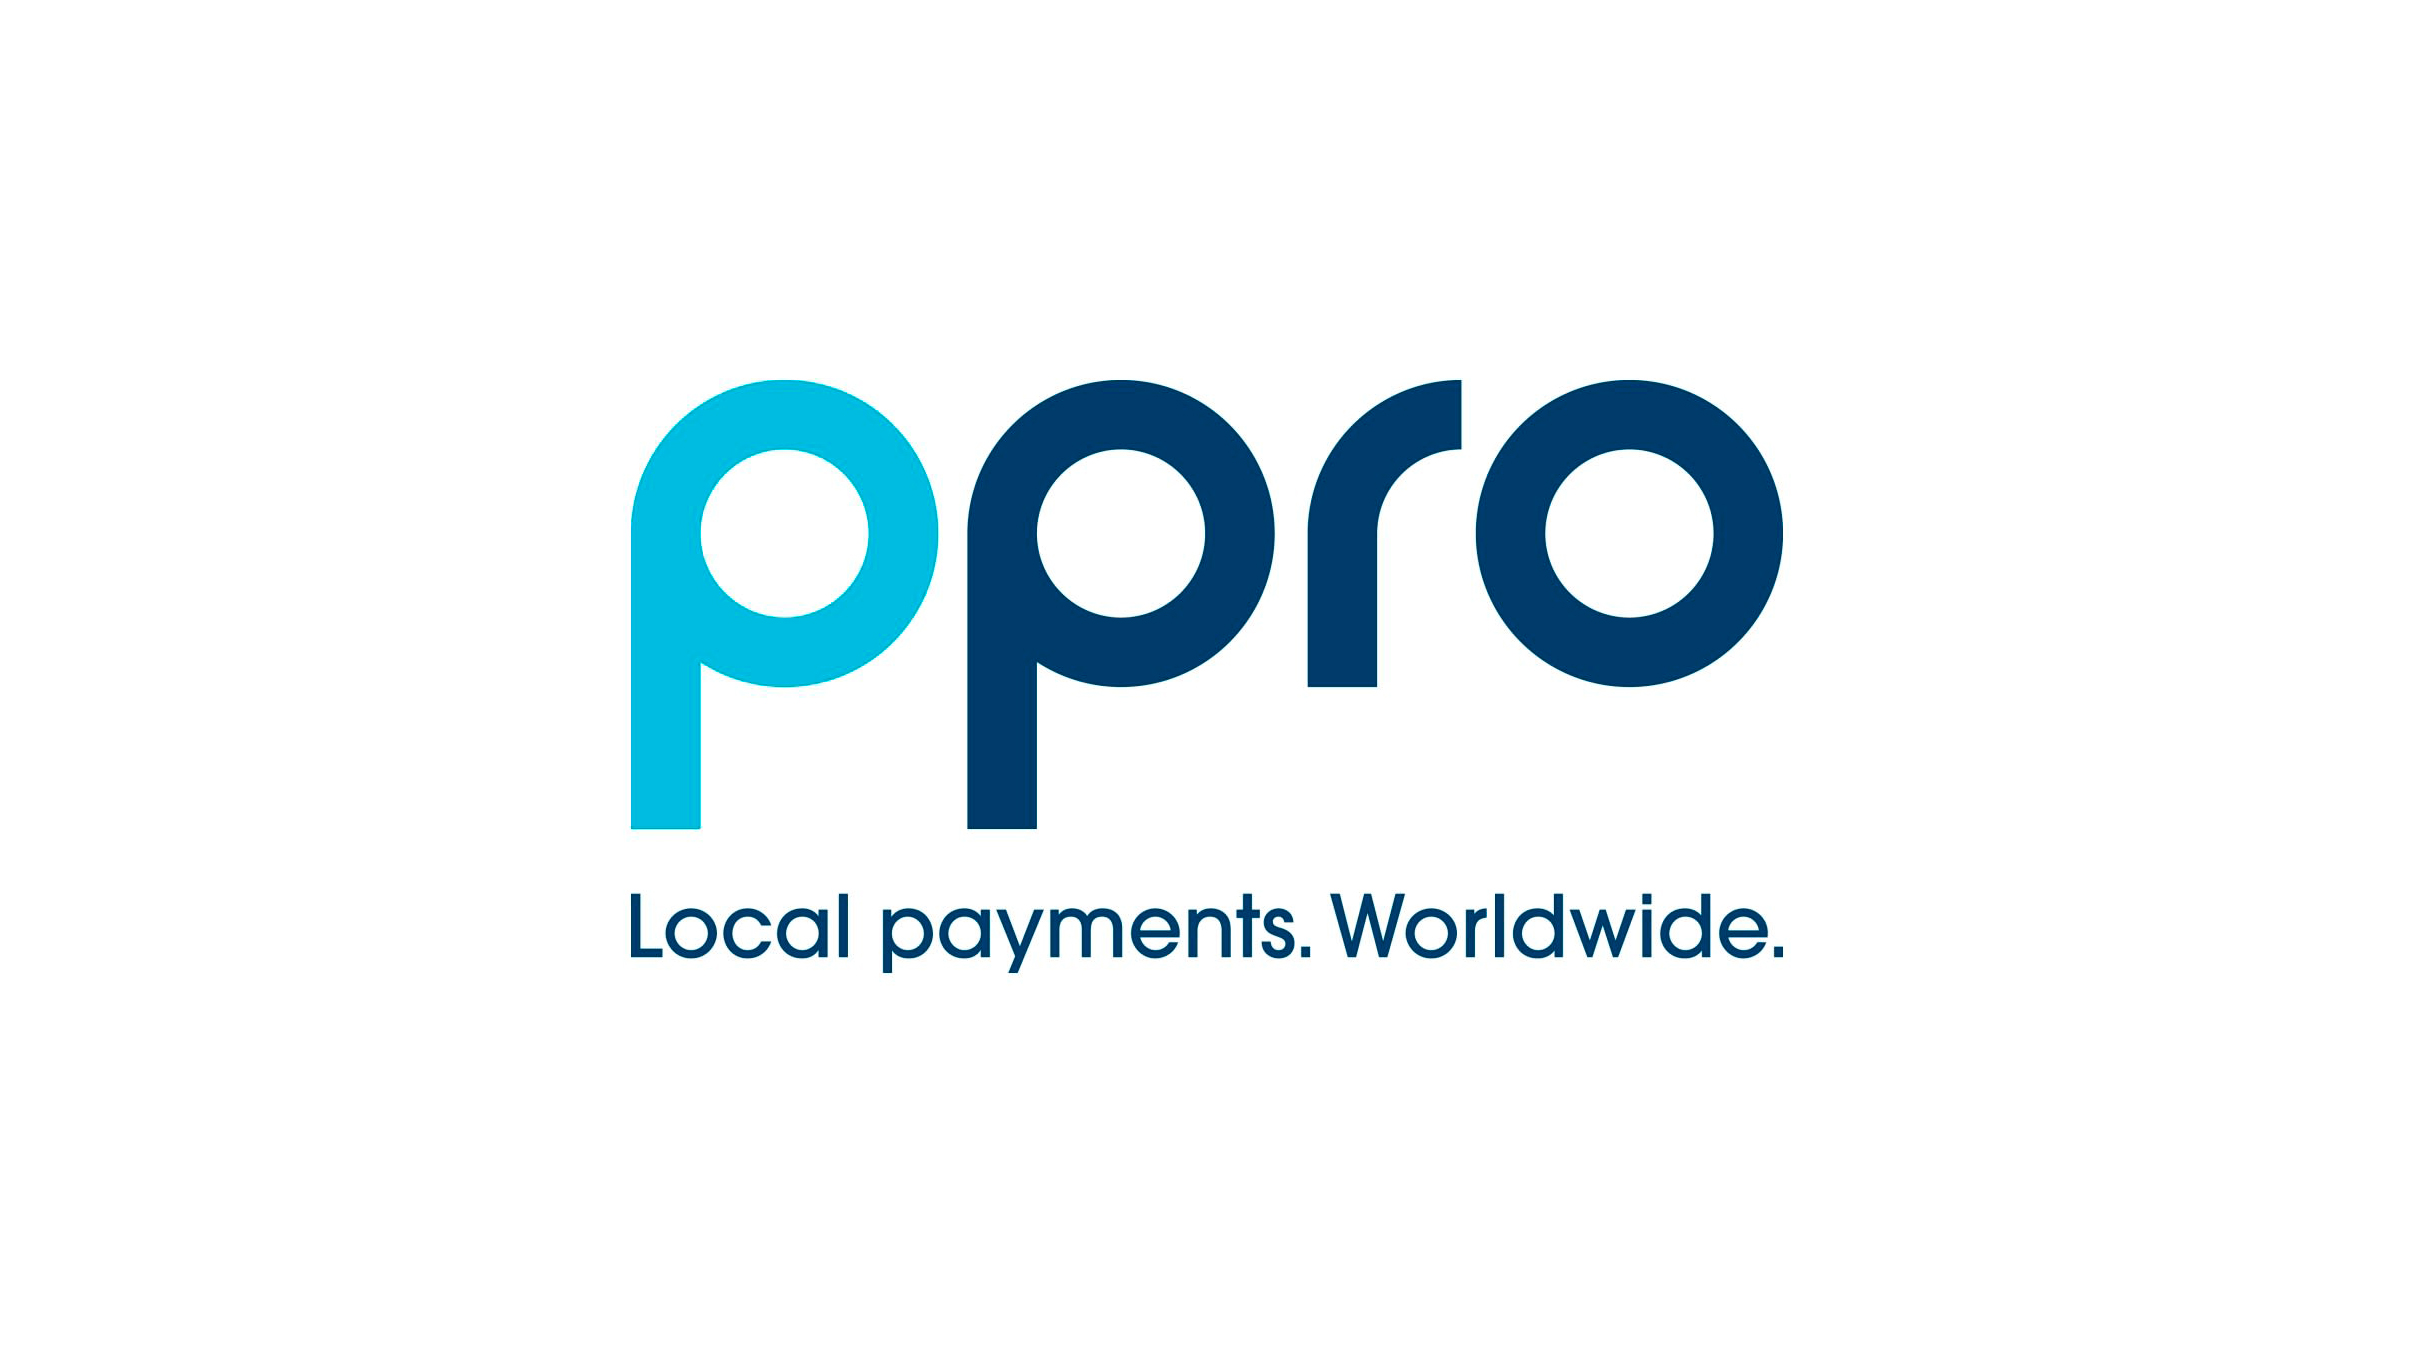 PPRO Announces New Appointments to Executive and Leadership Teams, Preps for Another Year of Hypergrowth